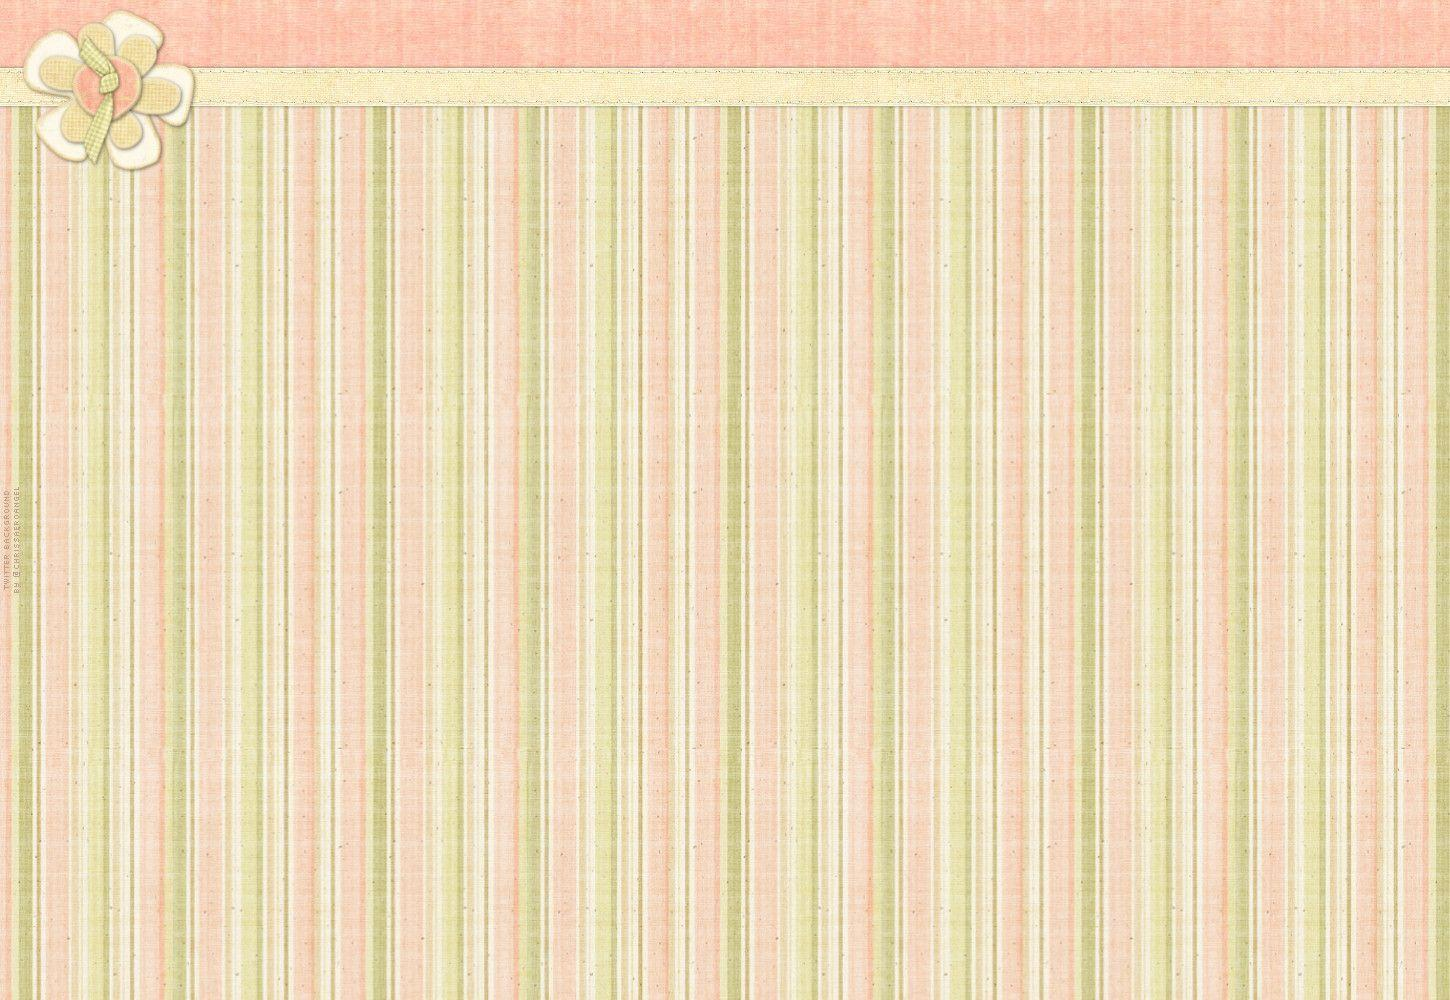 Soft Stripes Twitter Backgrounds, Soft Stripes Twitter Themes